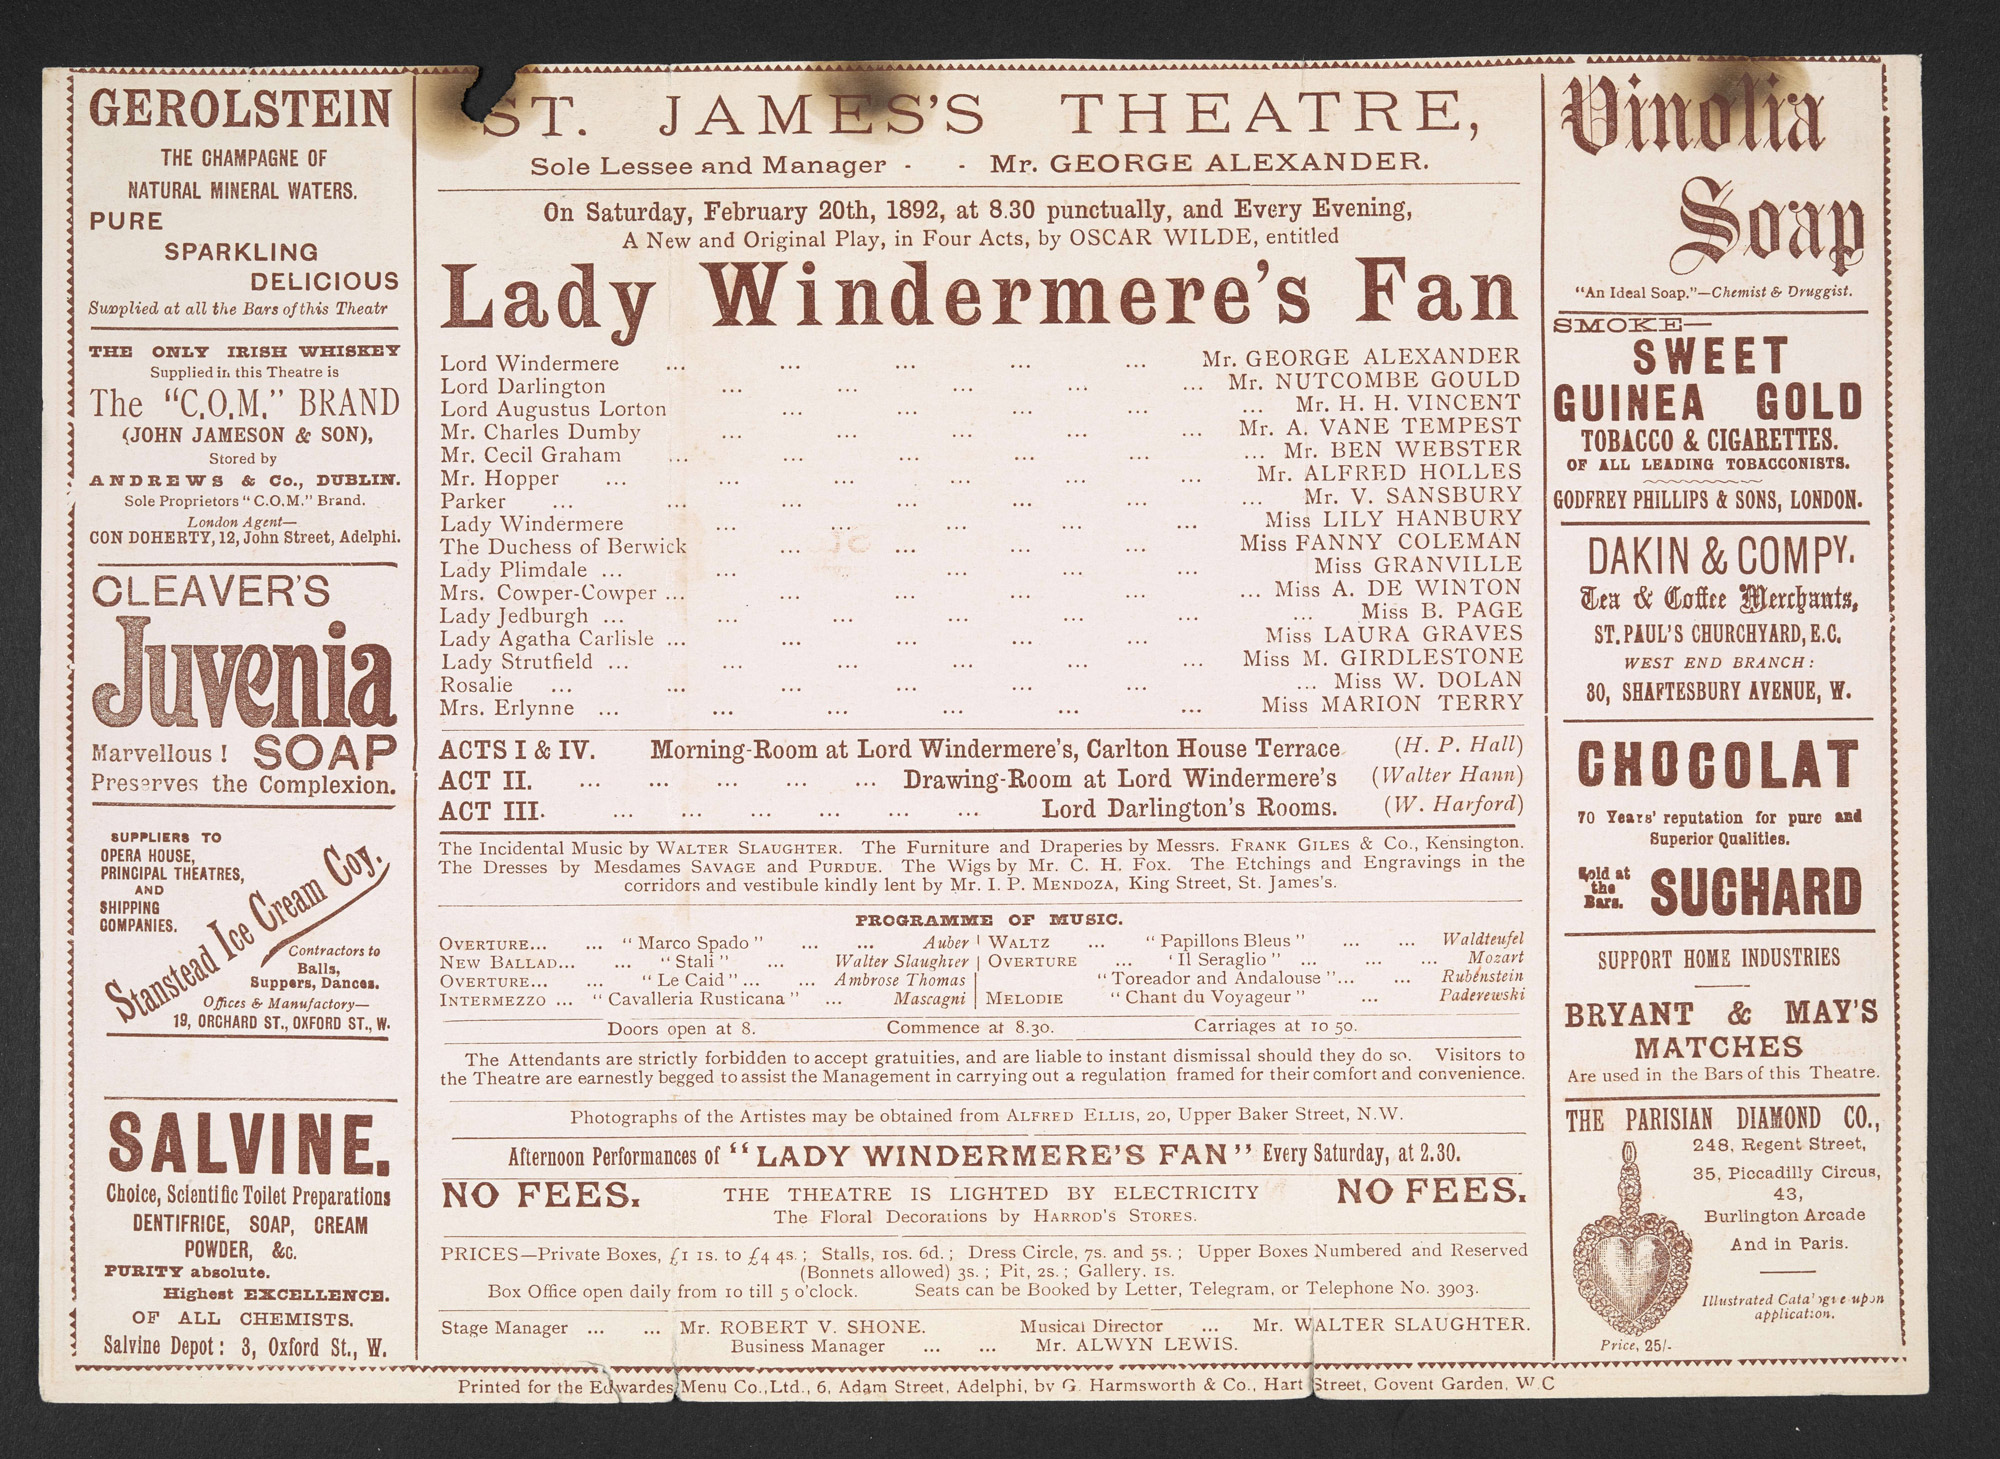 Theatre prgrammes for Oscar Wilde productions